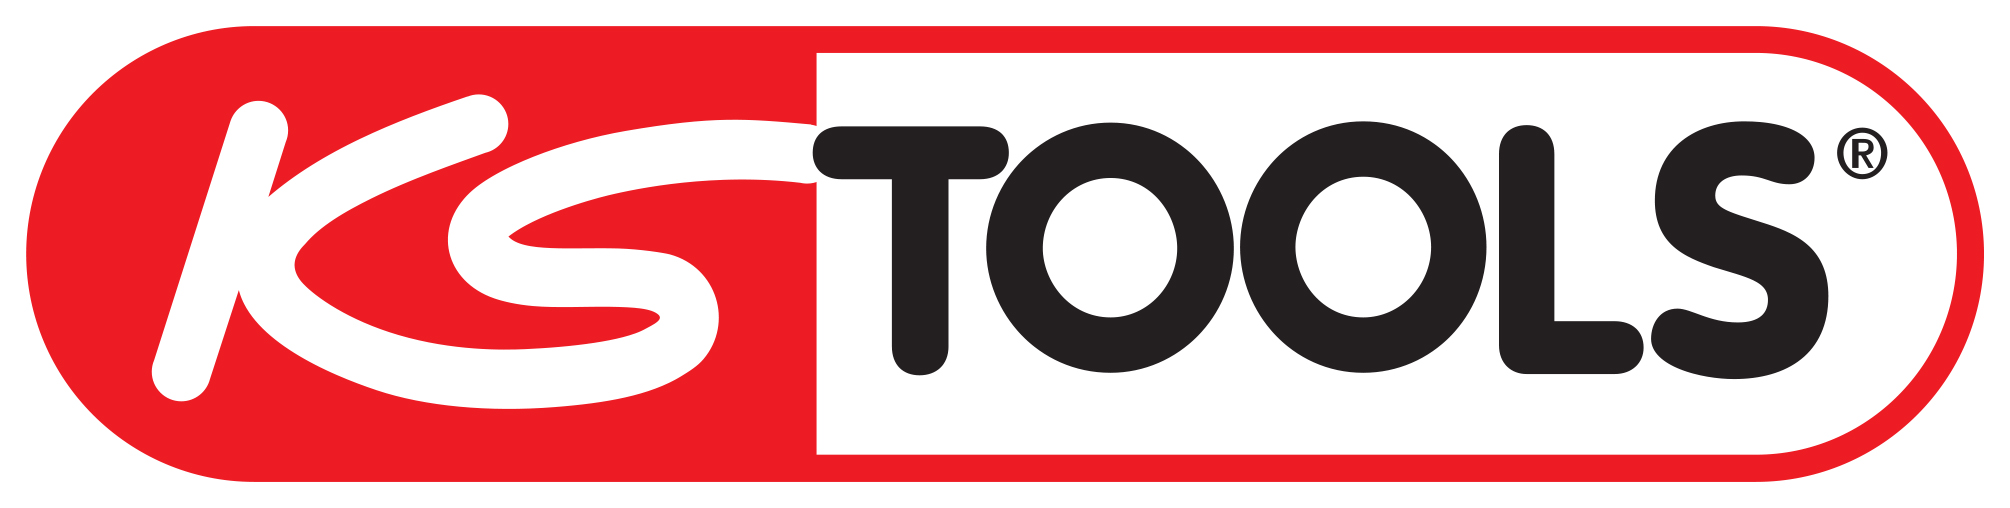 CARS CENTER EXPRESS 65 - logo KS Tools